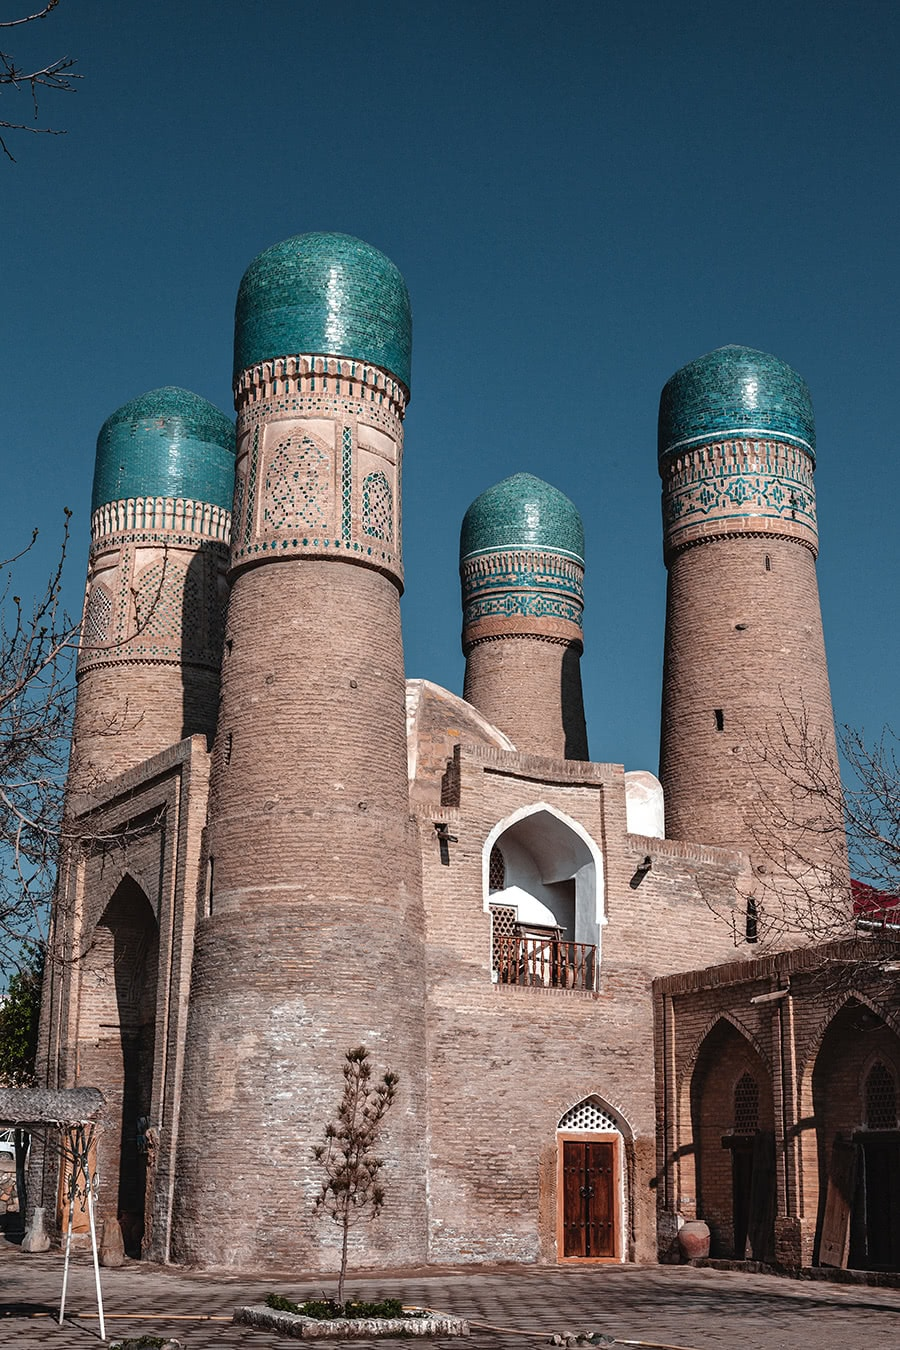 The iconic Char Minor in Bukhara, with its four distinctive dome towers.